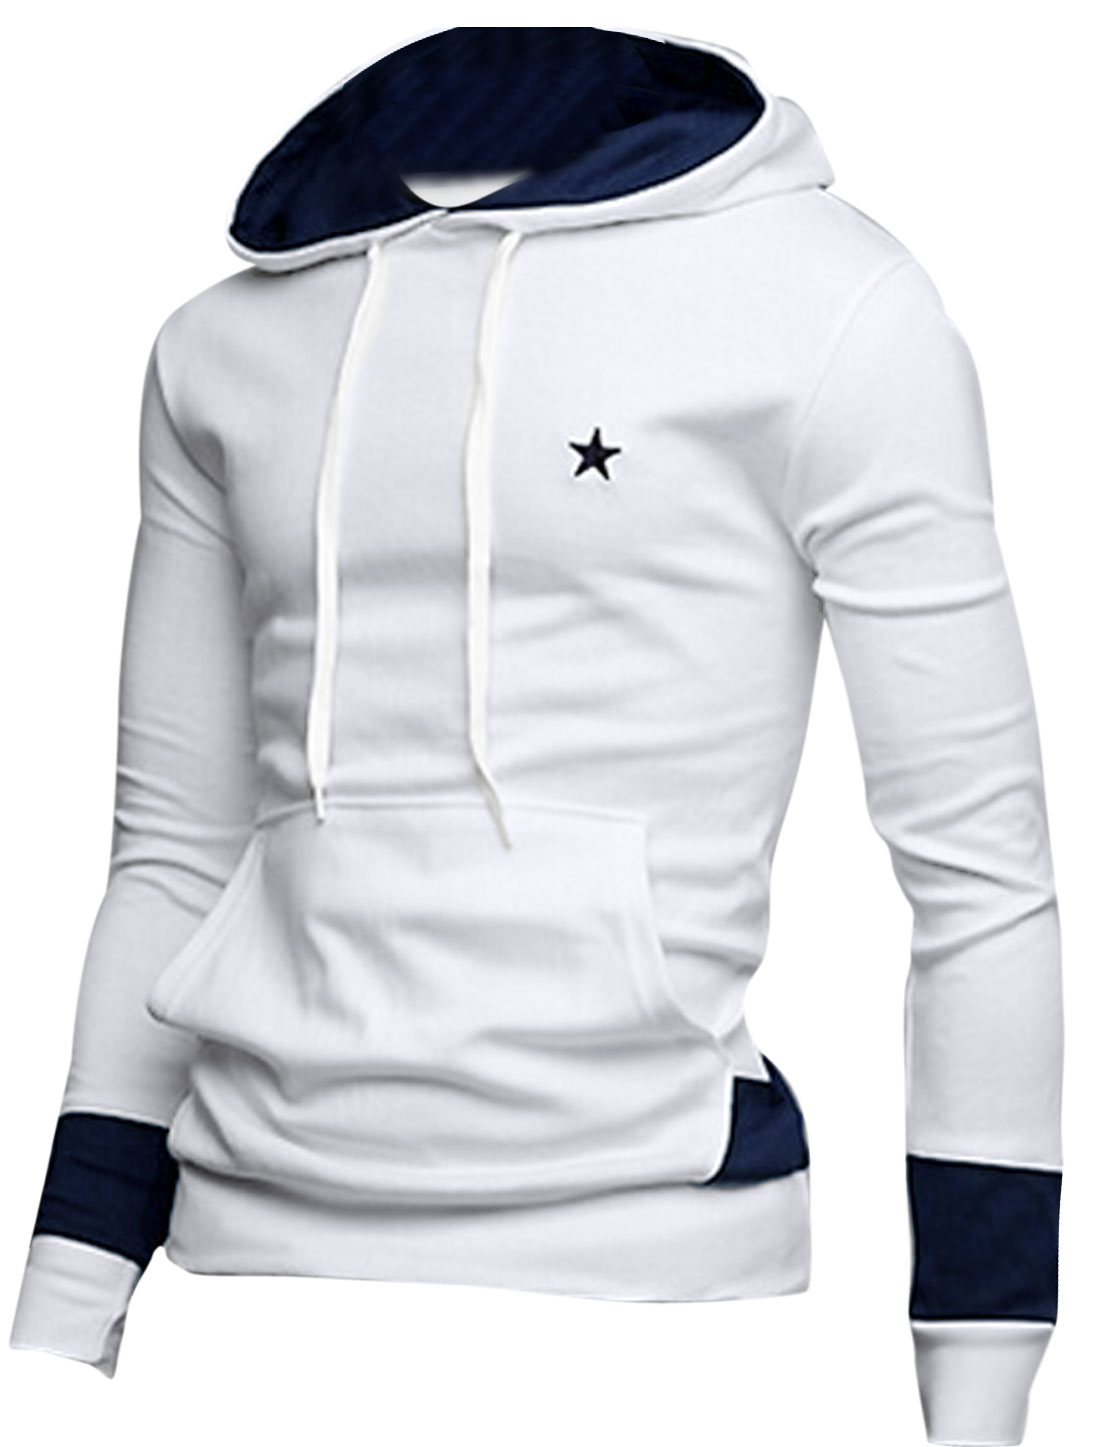 Men Colorblock Kangaroo Pocket Star Embroidery Hoodie Shirt White M